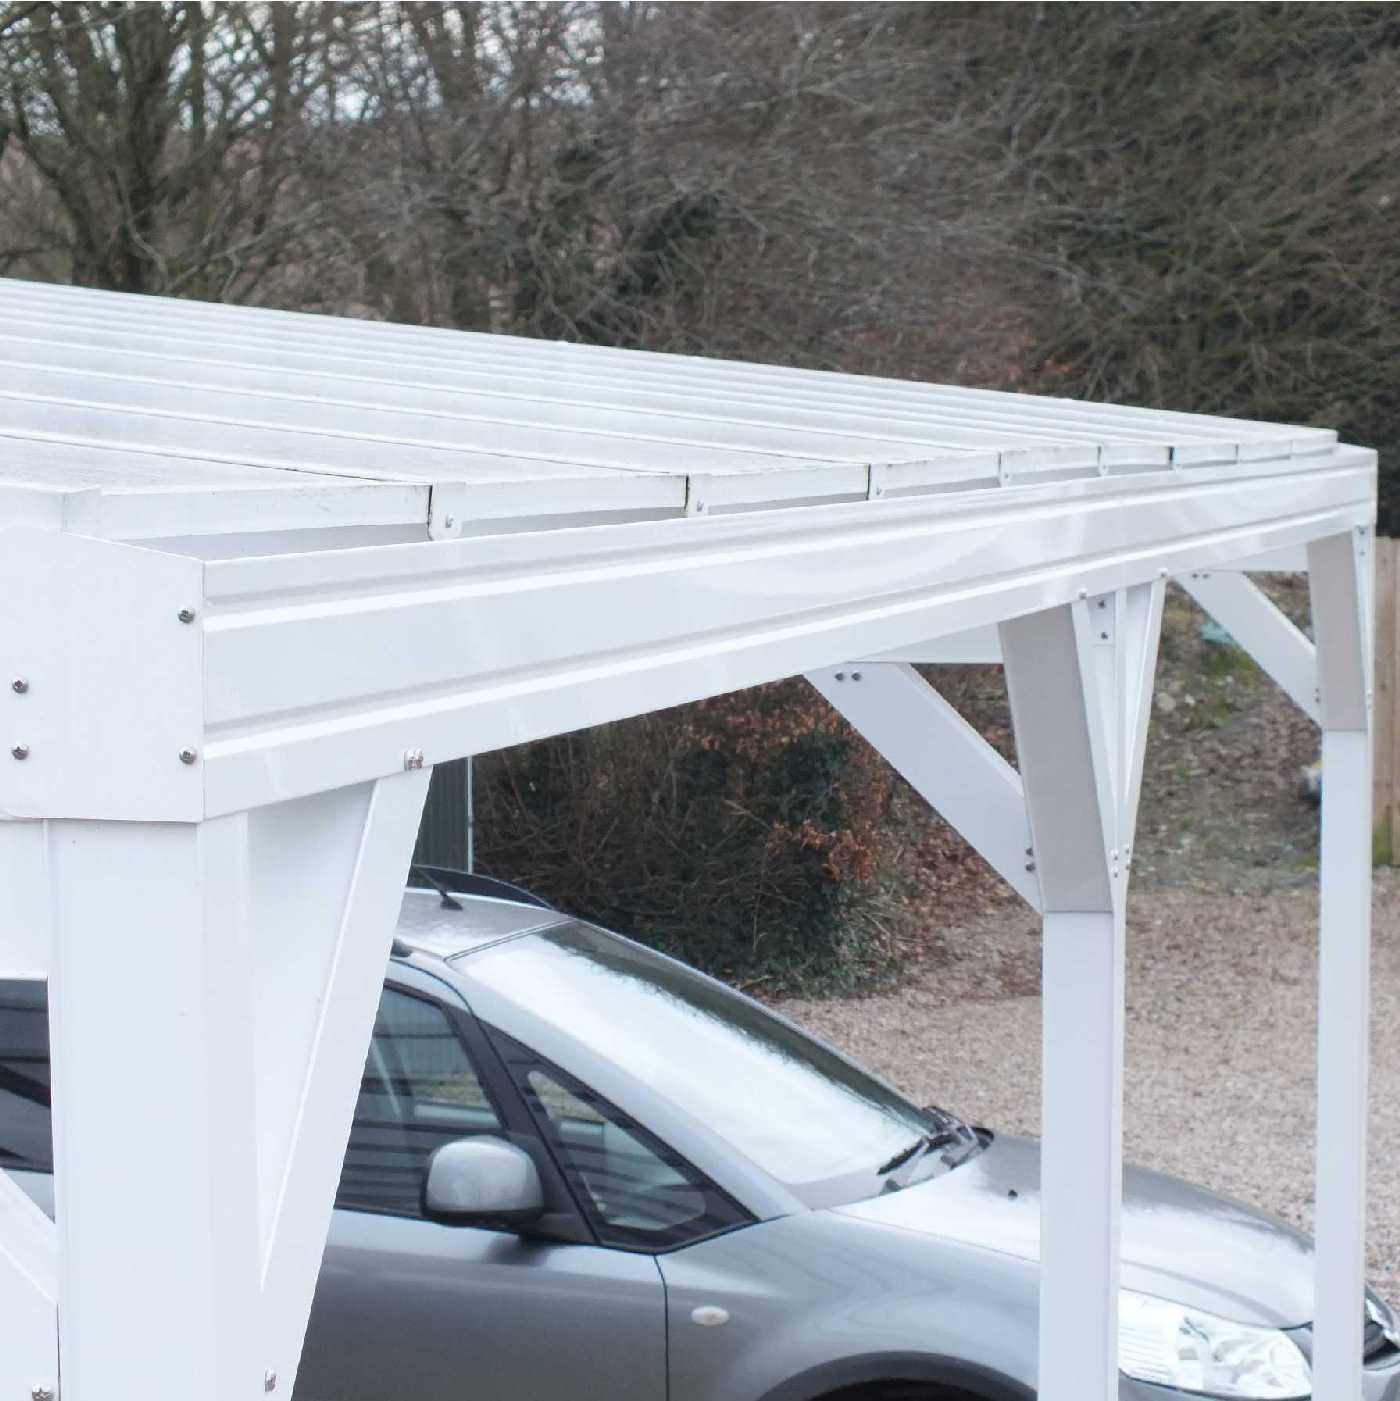 Omega Smart Free-Standing, MonoPitch Roof Canopy with 16mm Polycarbonate Glazing - 4.9m (W) x 4.0m (P), (6) Supporting Posts from Omega Build